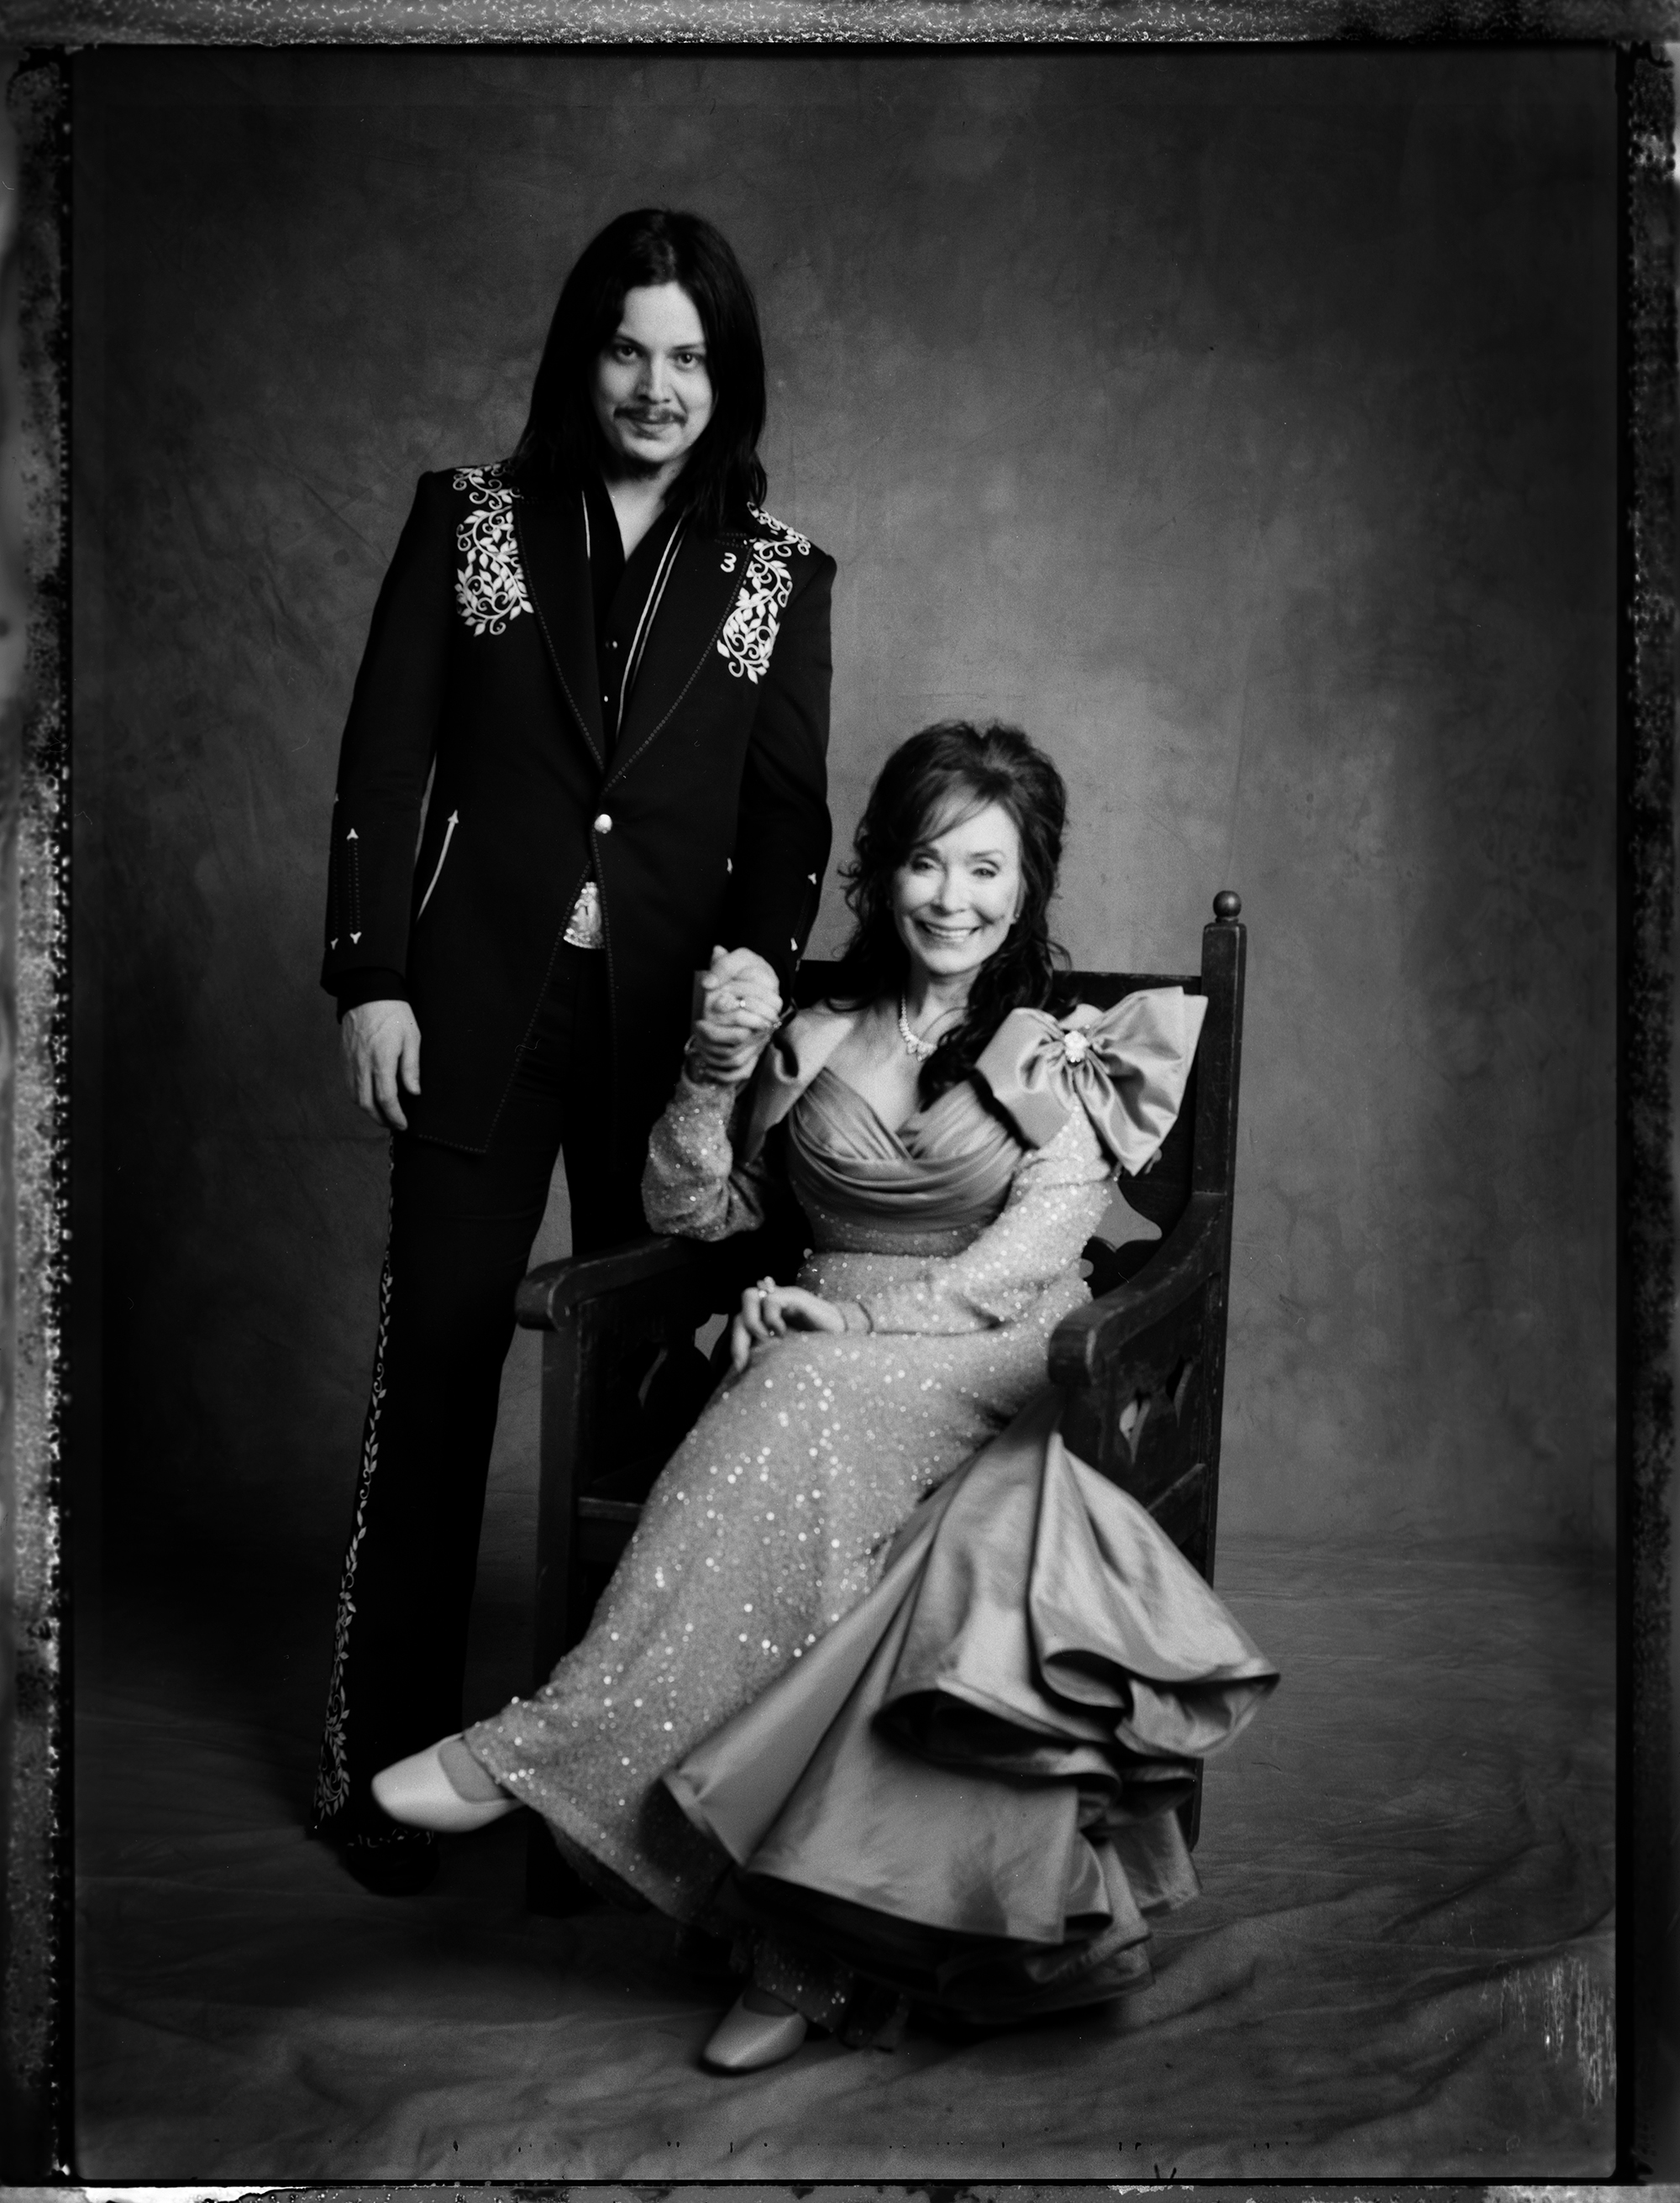 Jack White and Loretta Lynn, 2005.